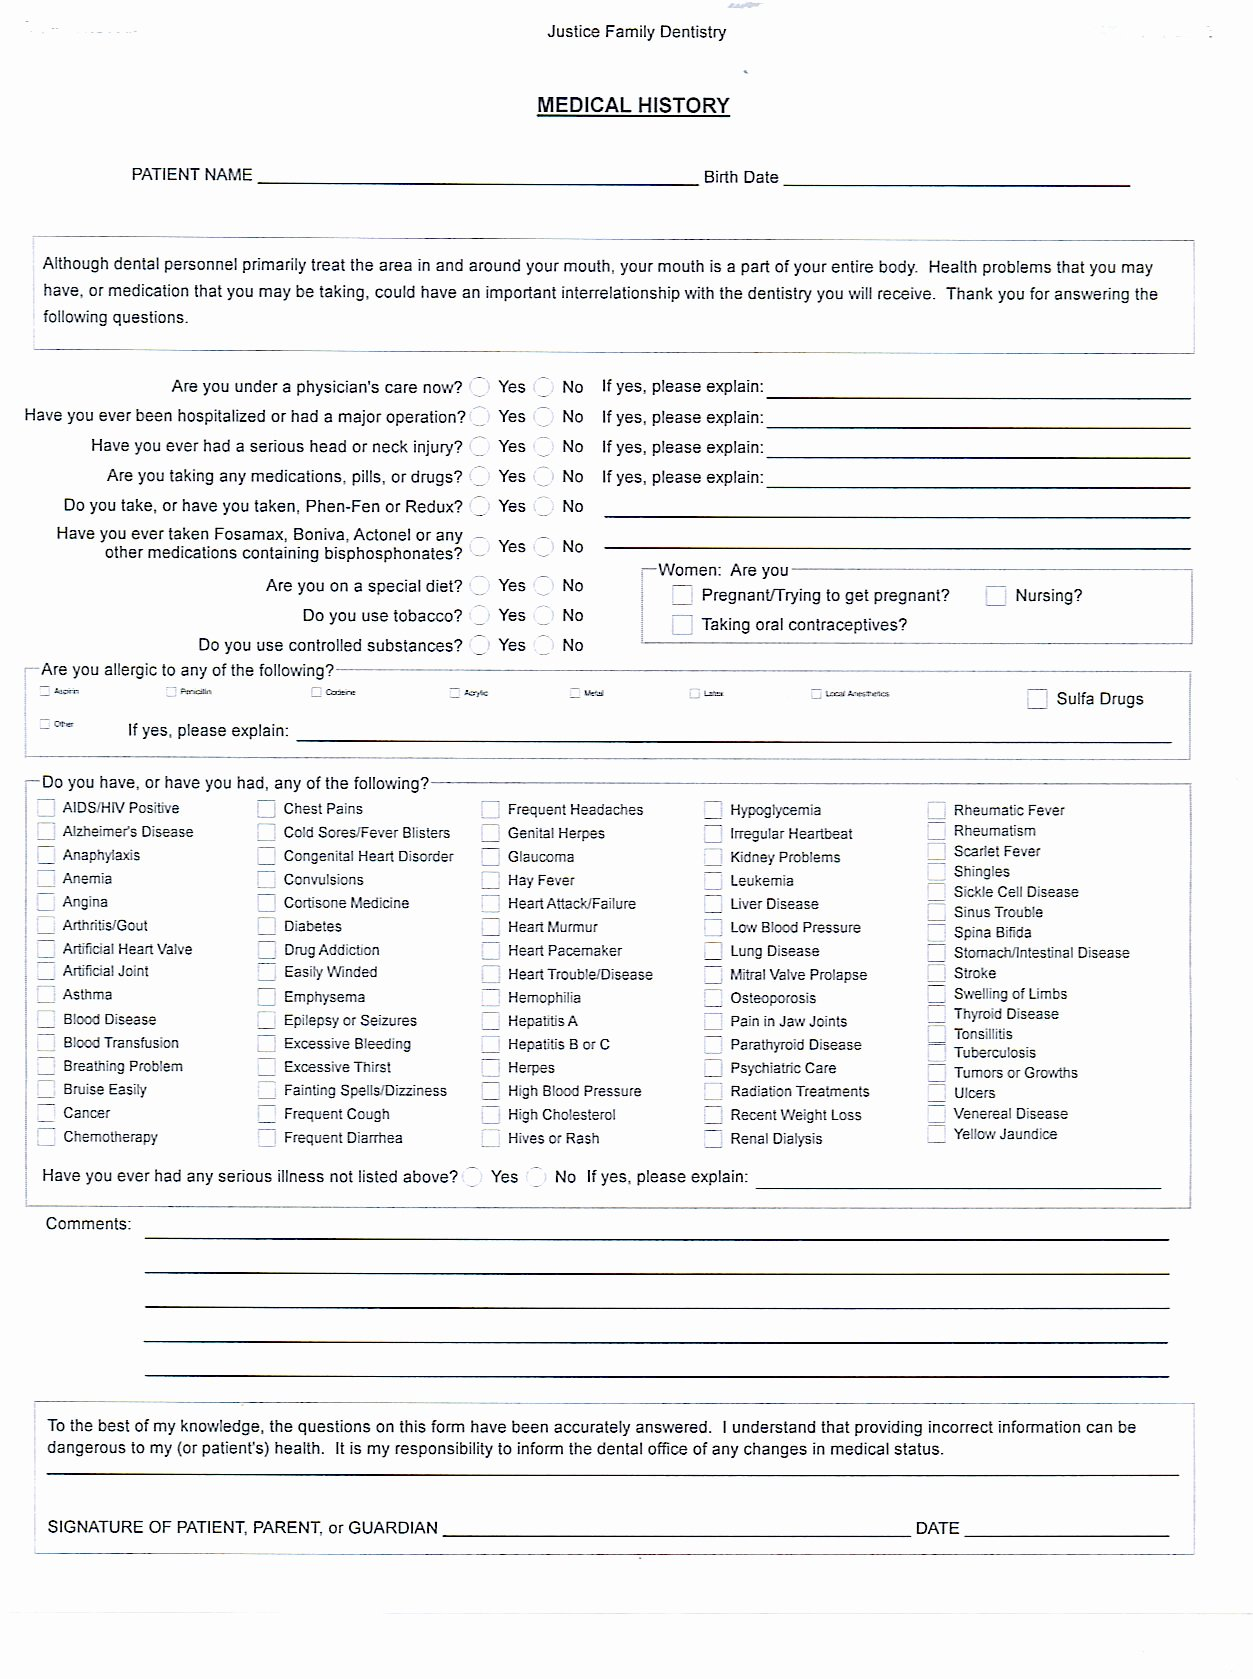 Dental Patient forms Template Lovely Medical History form – Medical form Templates